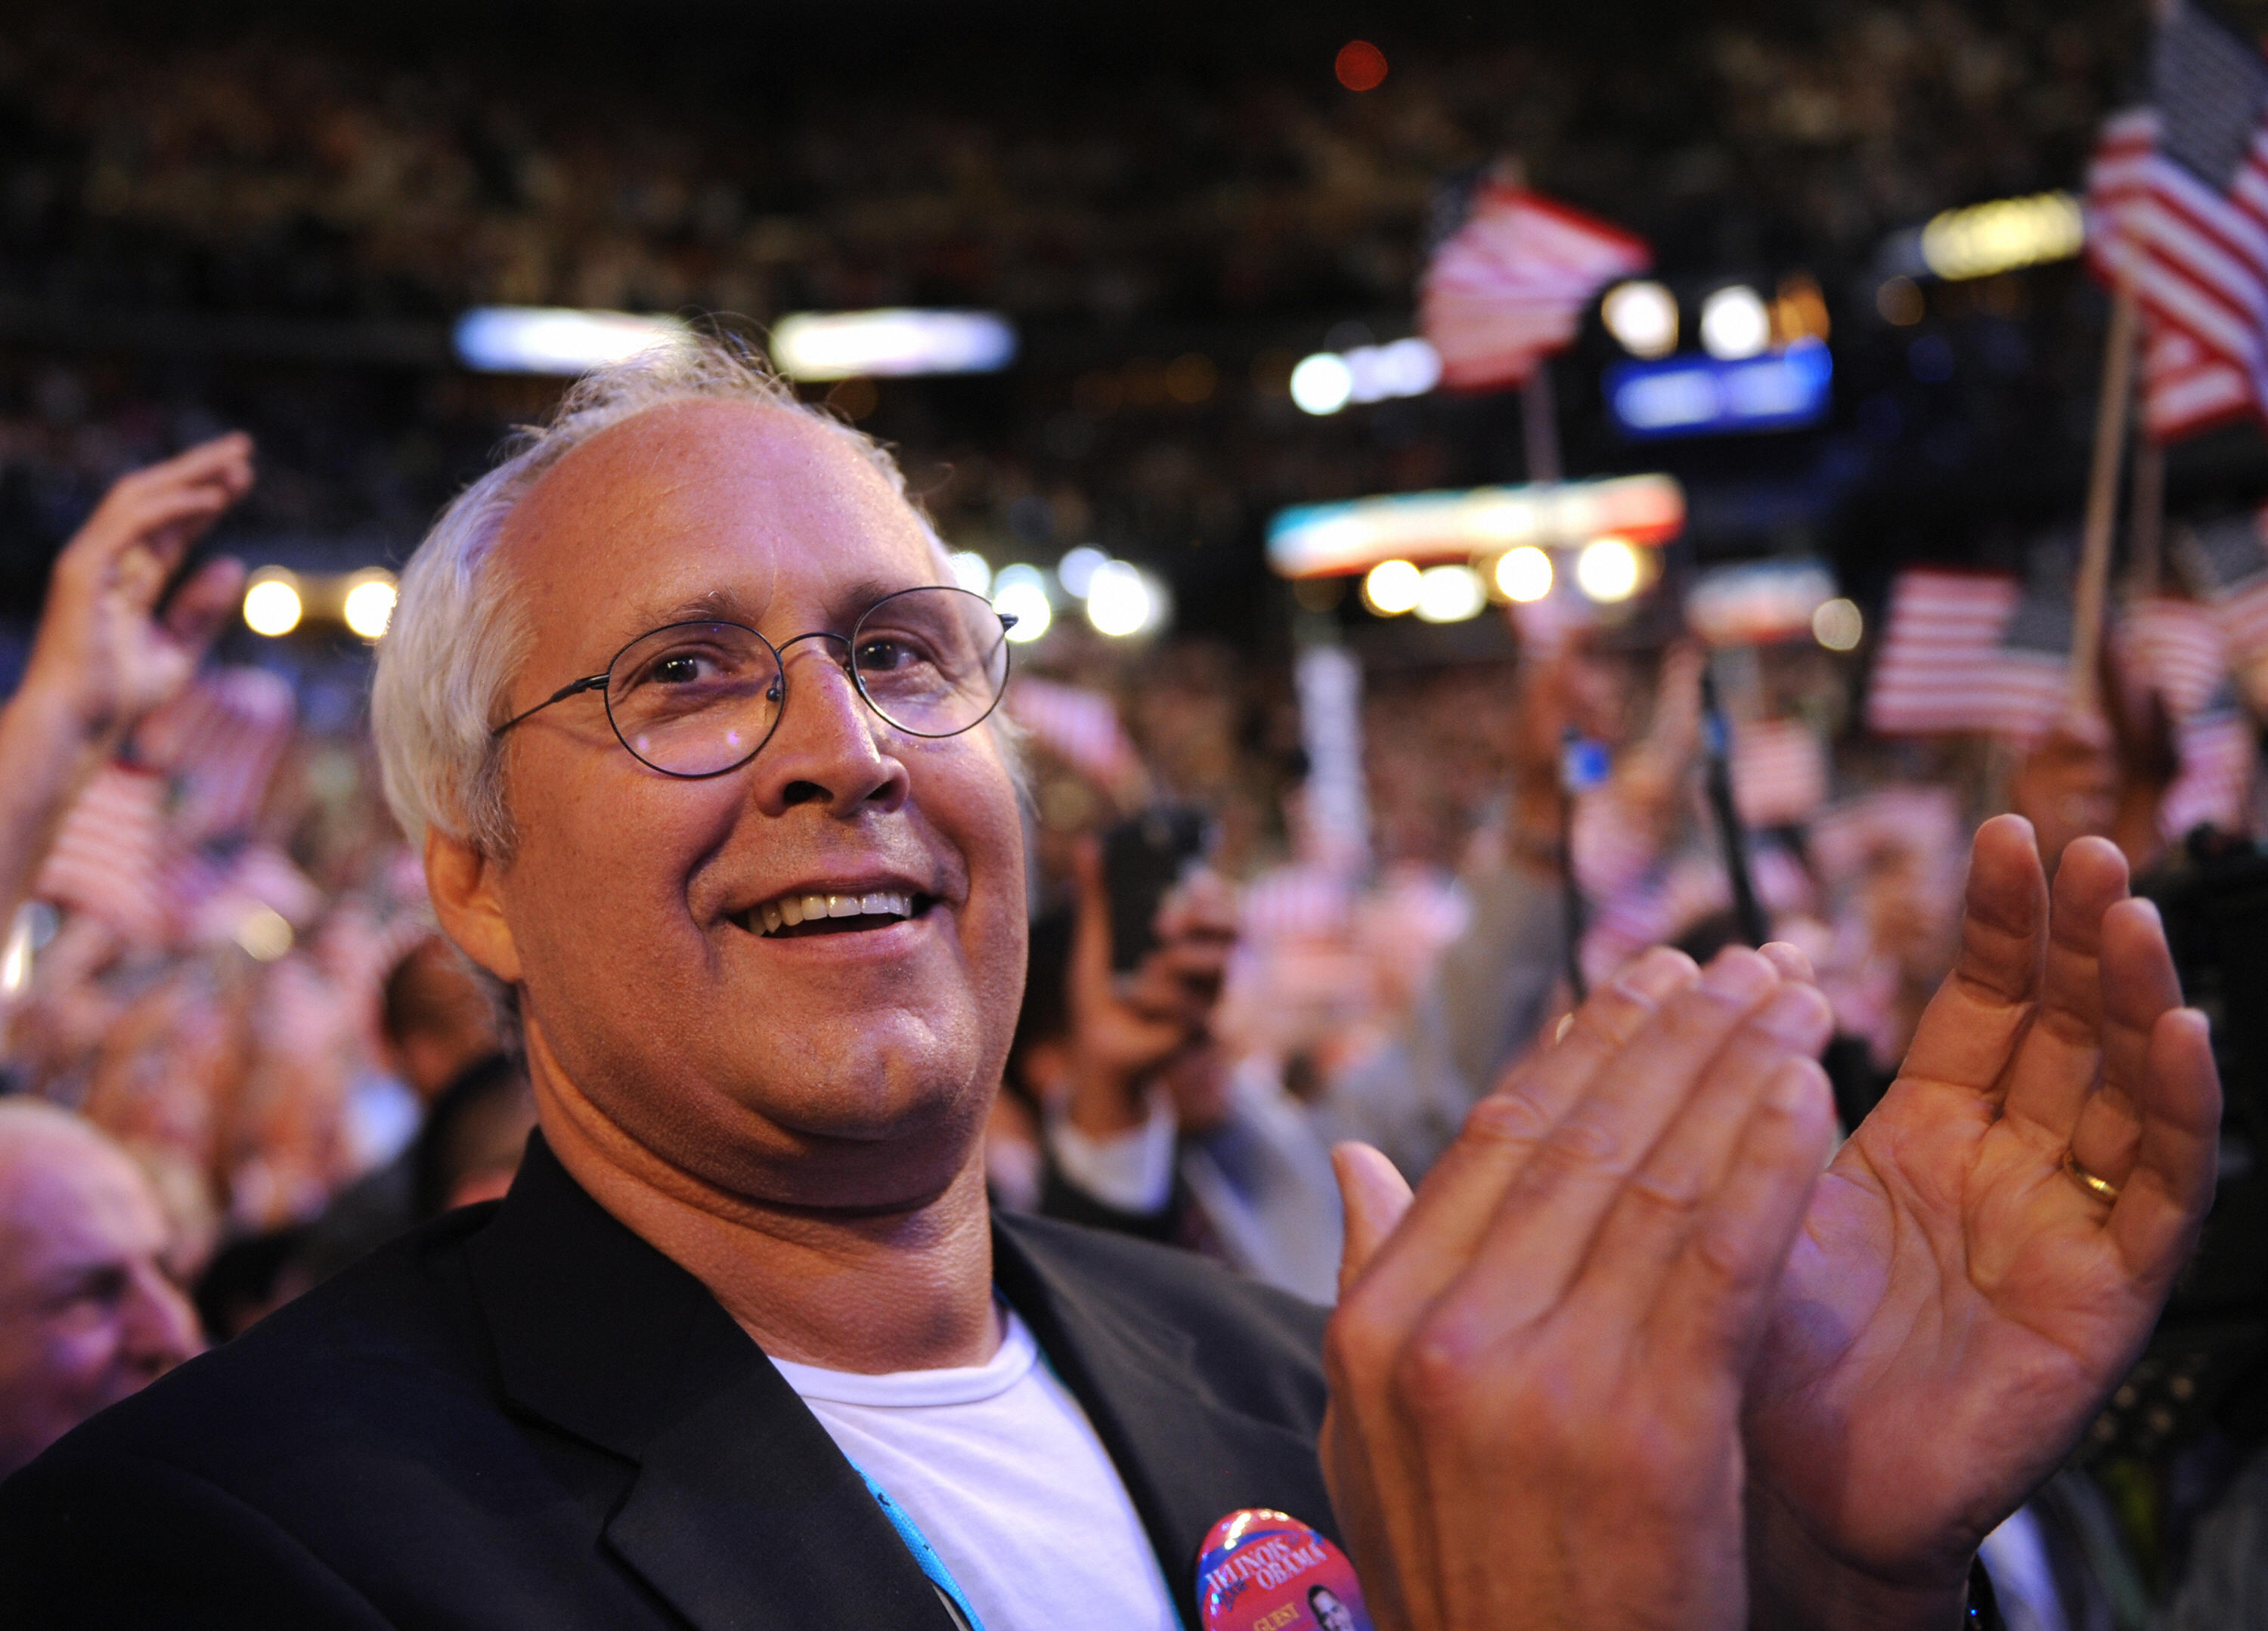 Chevy Chase clapping at a political rally